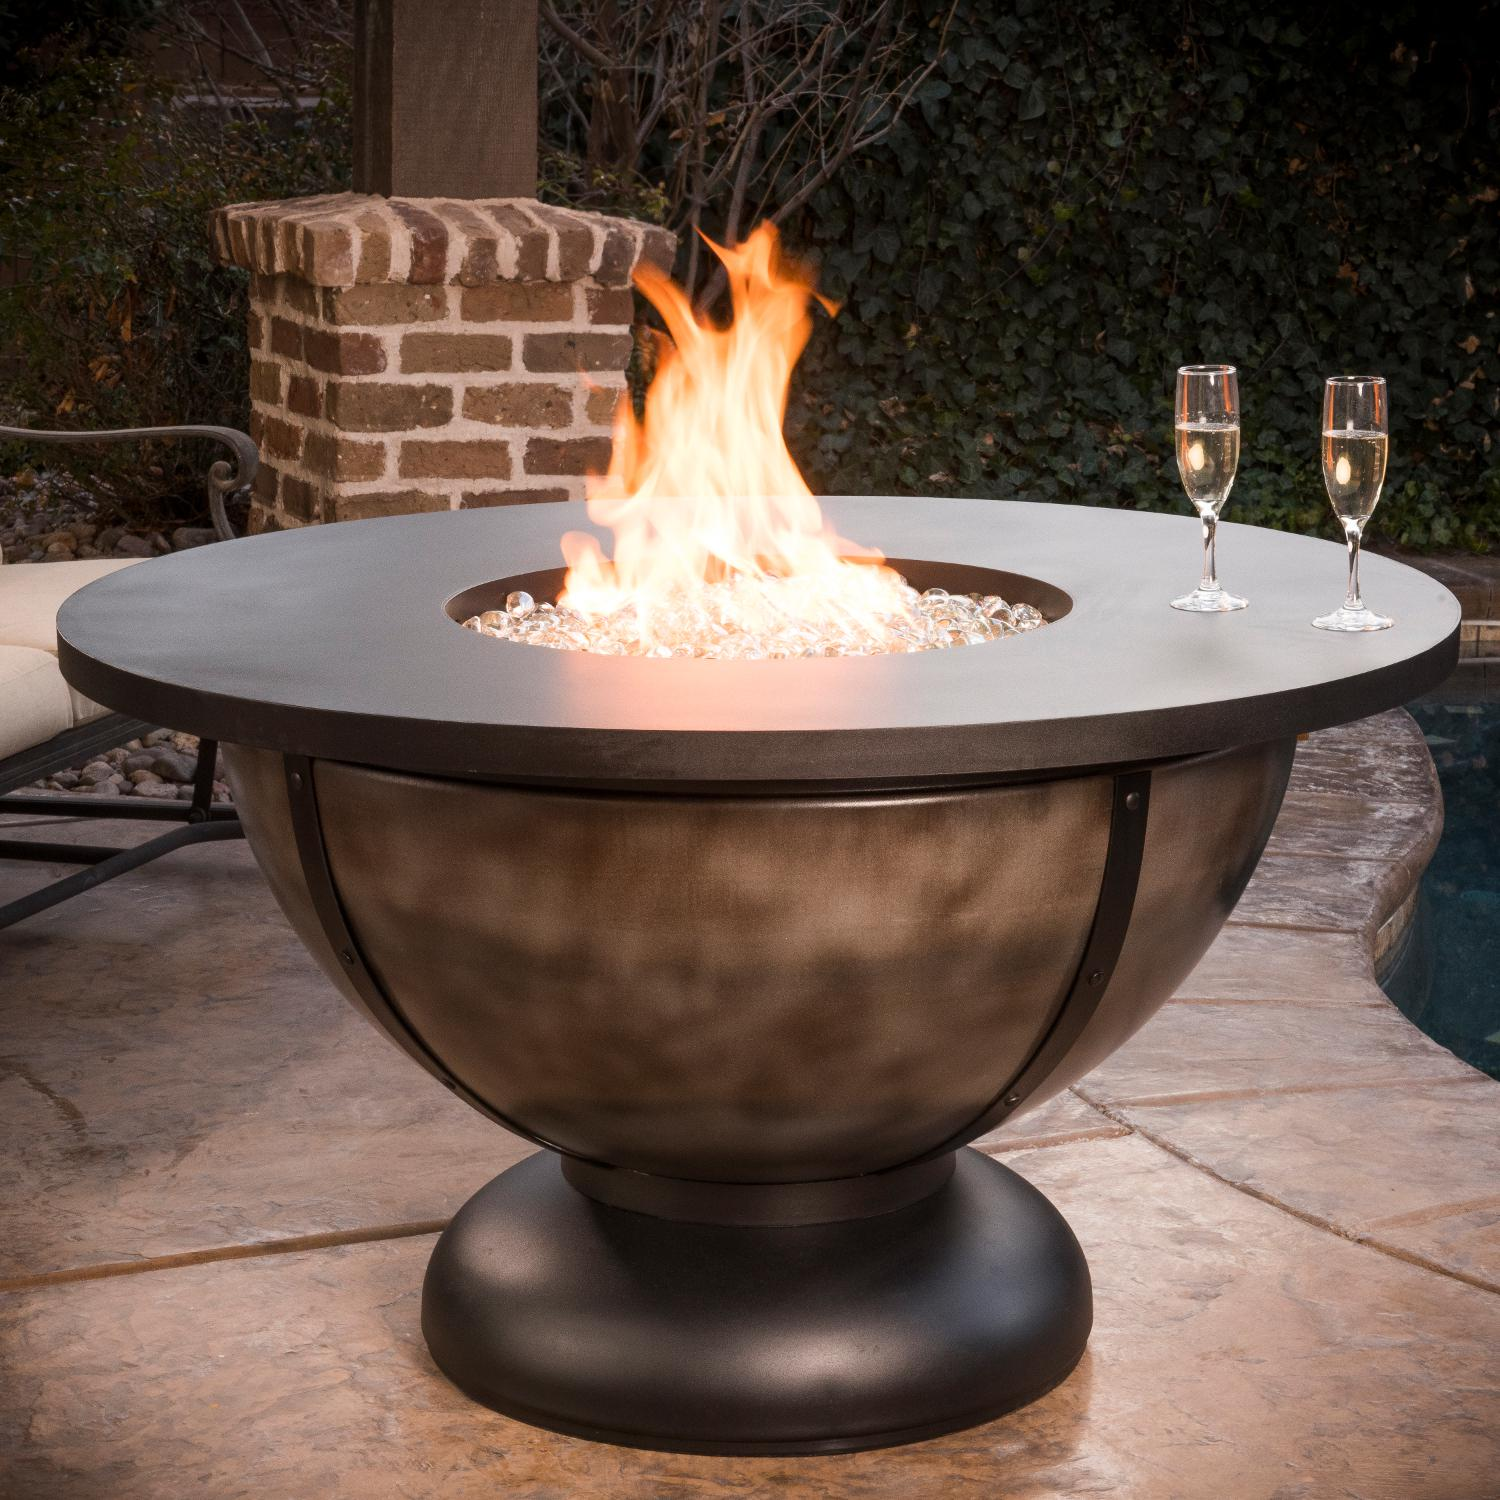 90,000 BTU Round Propane Gas Fire Table